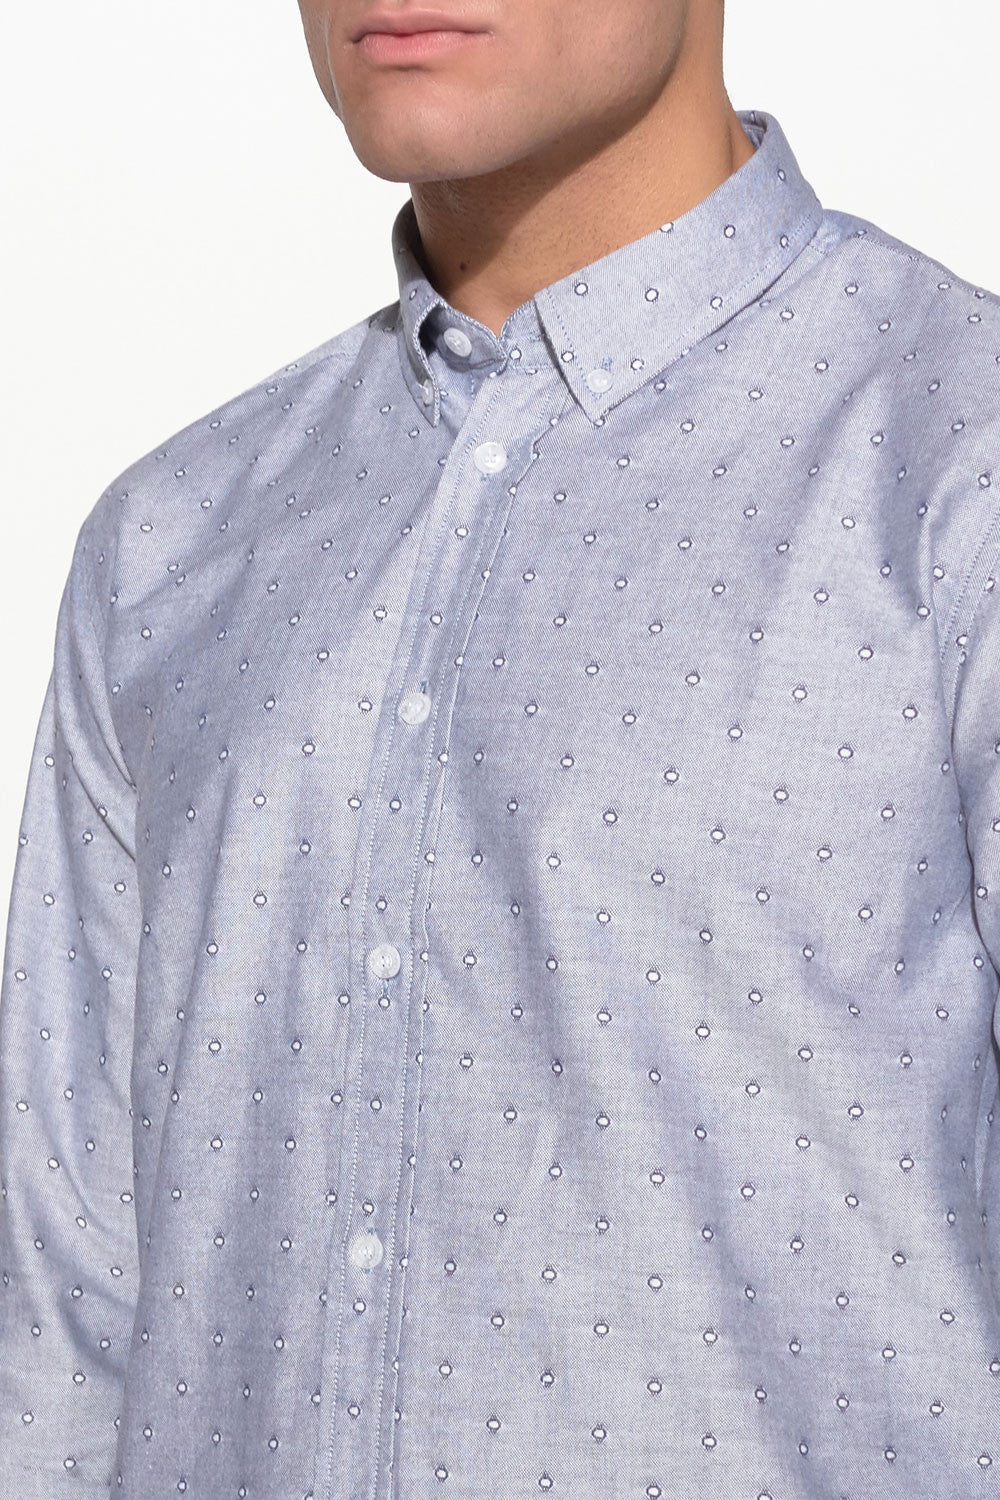 SOULLAND - GOLDSMITH OXFORD SHIRT – GREY W. DOTS - Men Clothing - Ozon Boutique - 4